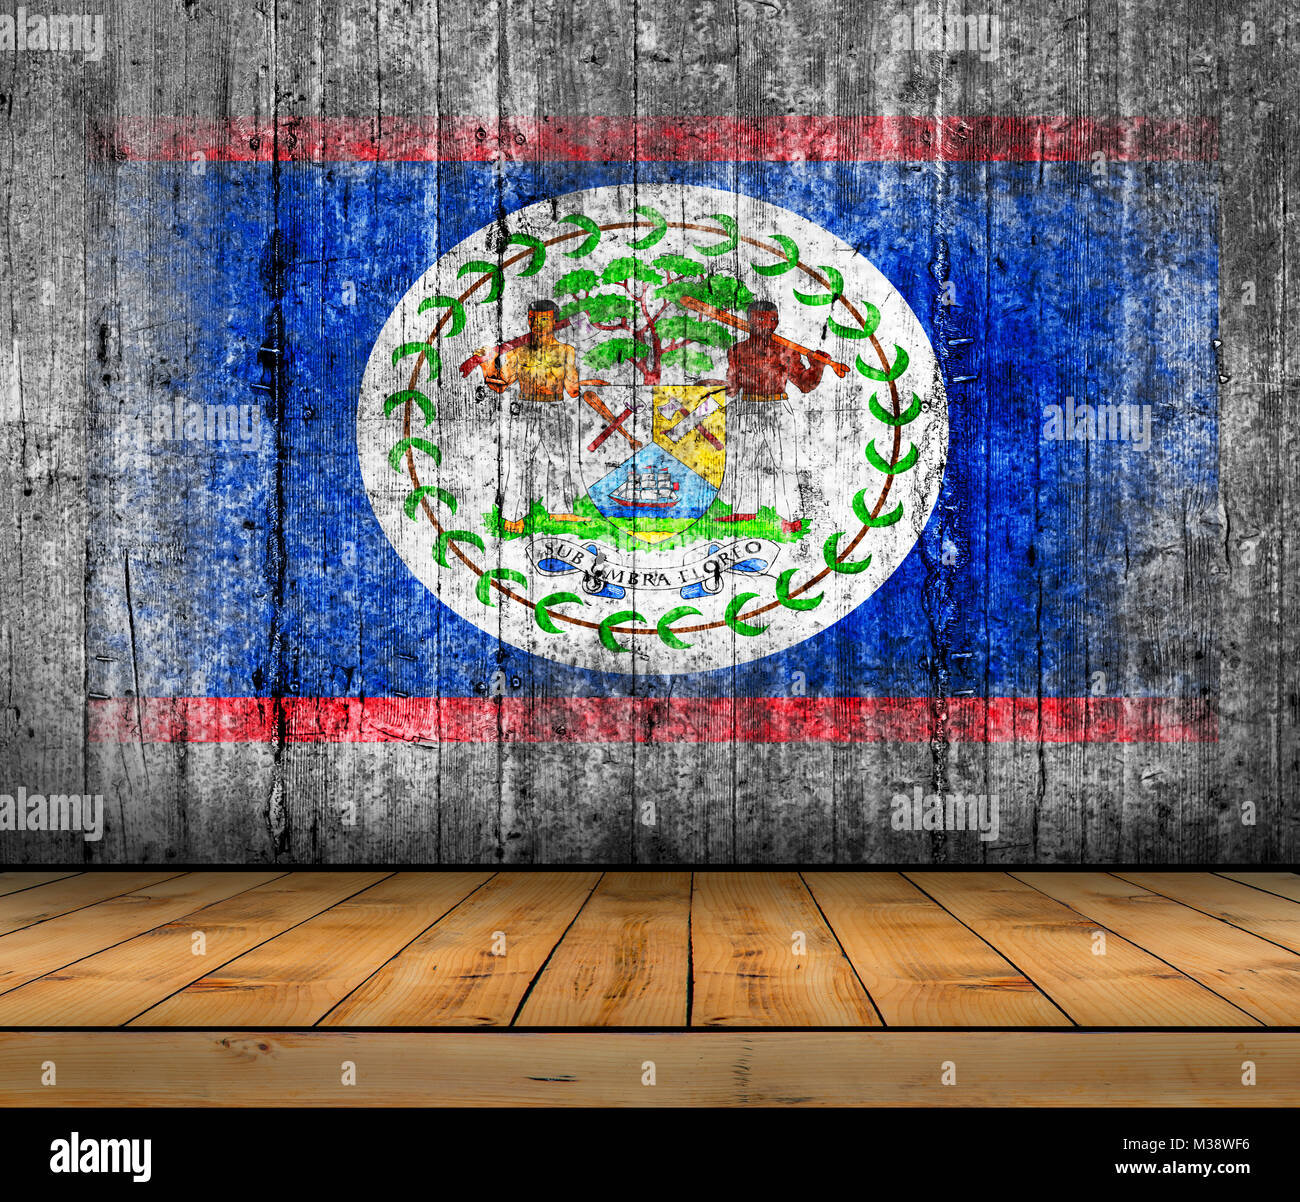 National flag of belize stock photos national flag of belize belize flag painted on background texture gray concrete with wooden floor stock image biocorpaavc Image collections